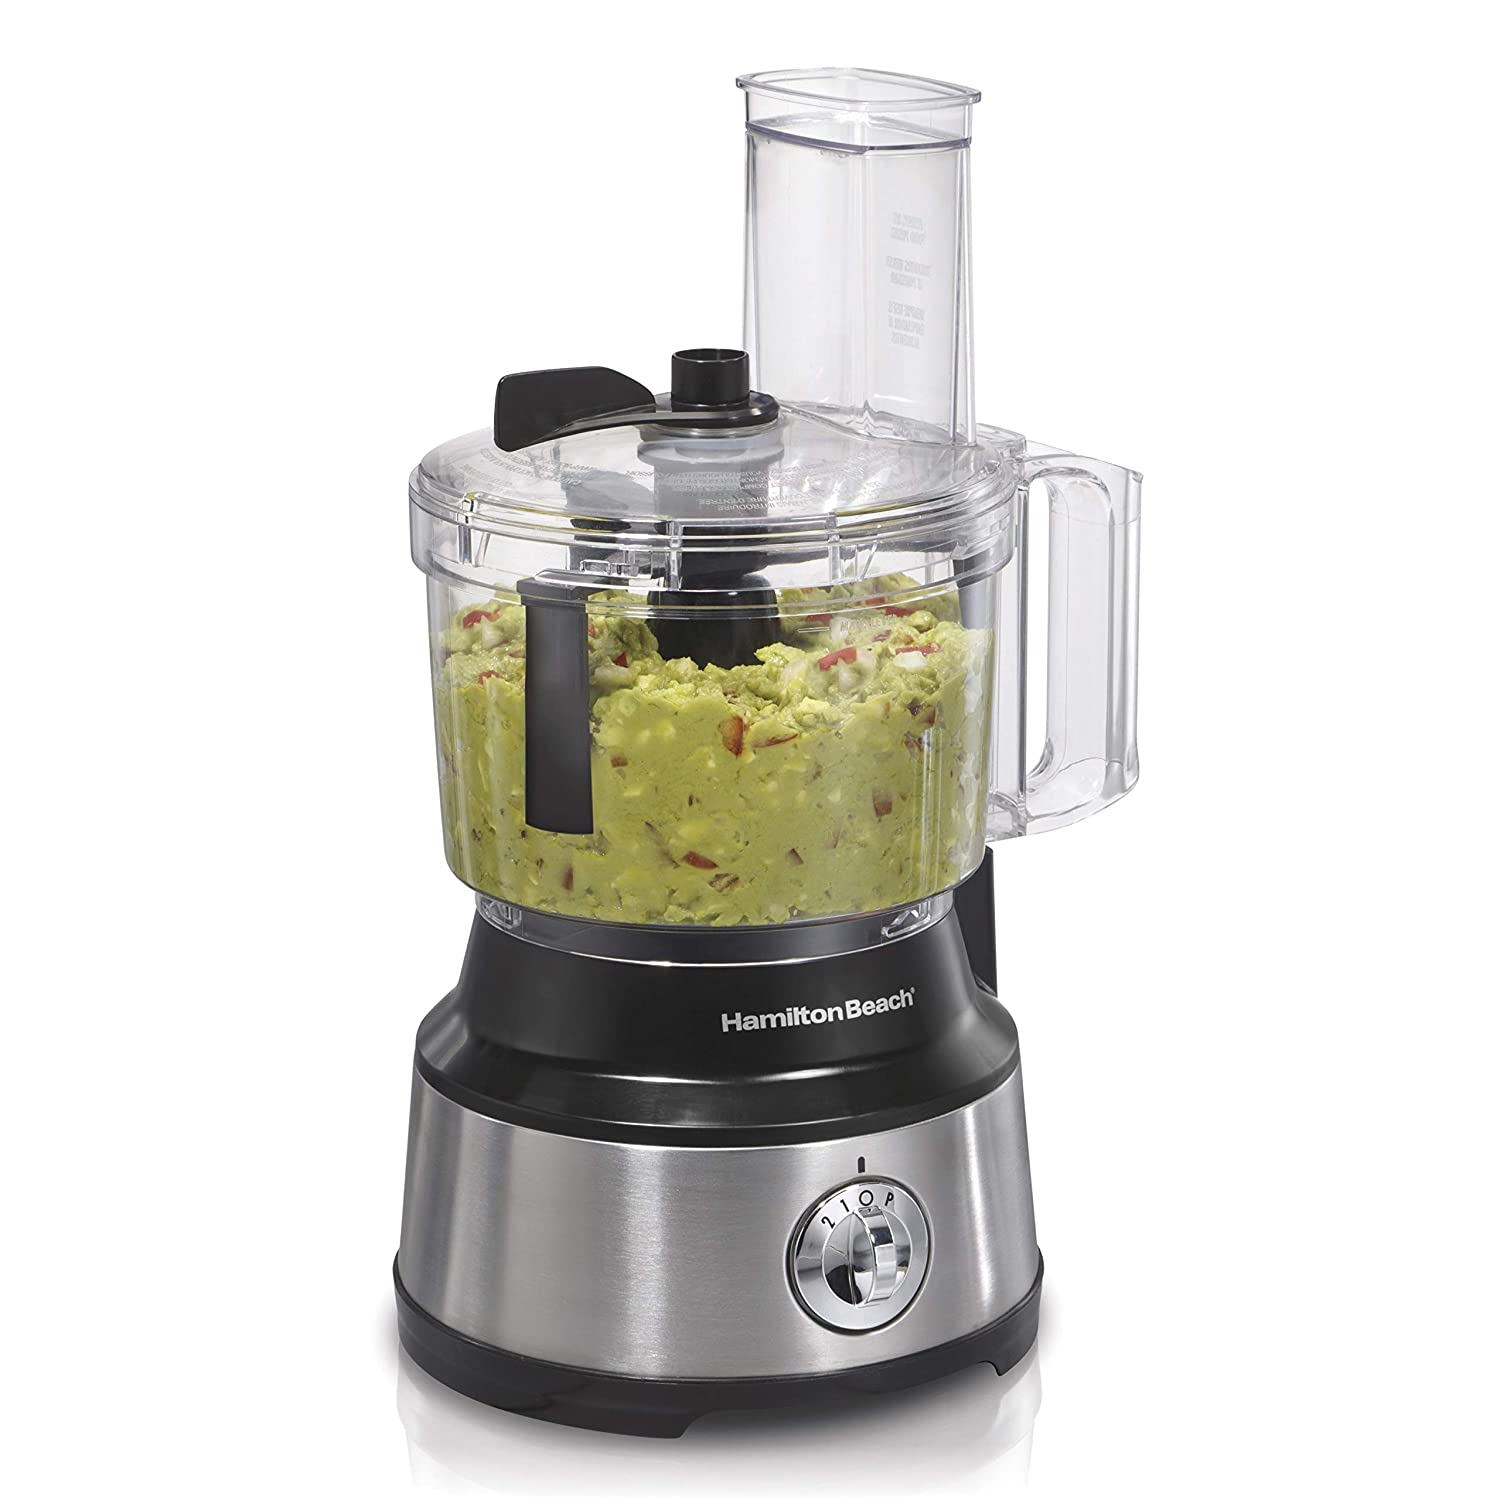 The Best food processor - Our pick